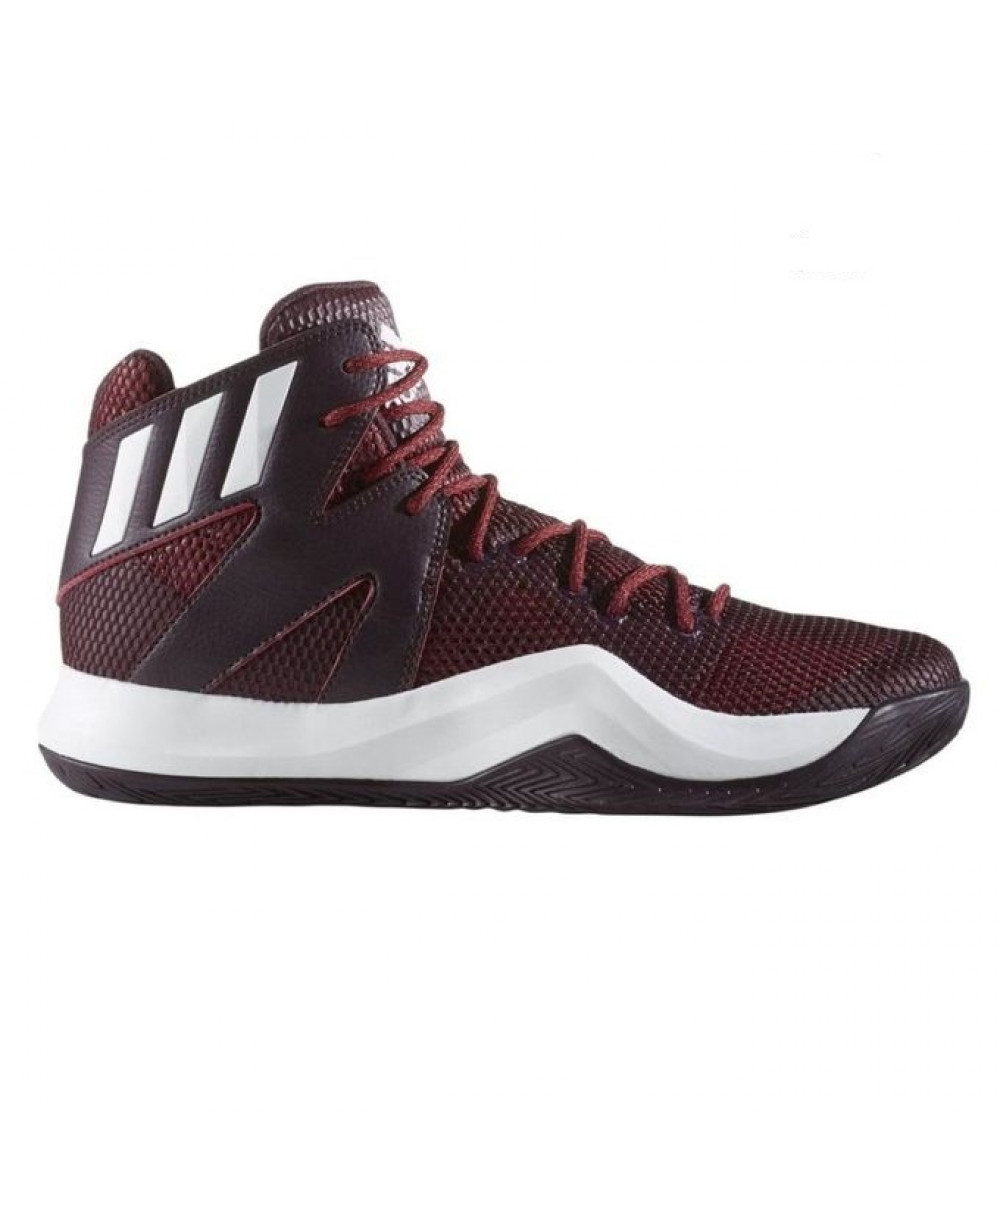 62f3f18d6 More Views. Adidas Crazy Bounce Basketball Shoes For Men AQ7437